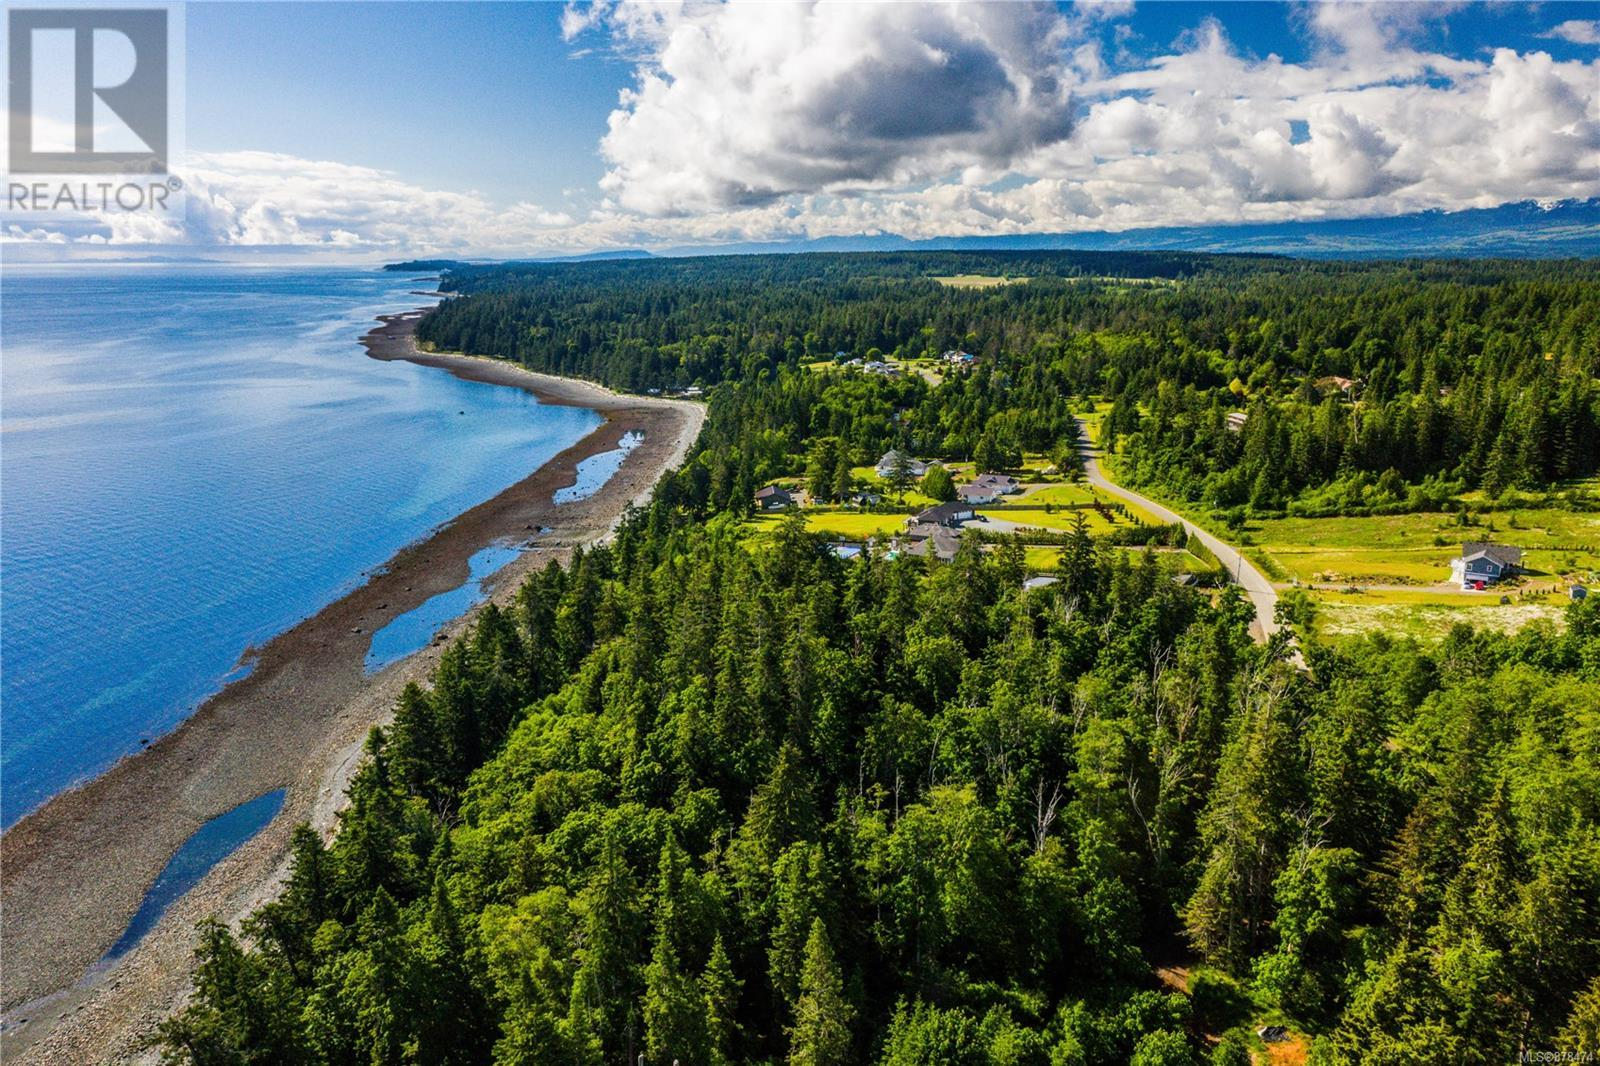 MLS® #878474 - Courtenay For sale Image #40